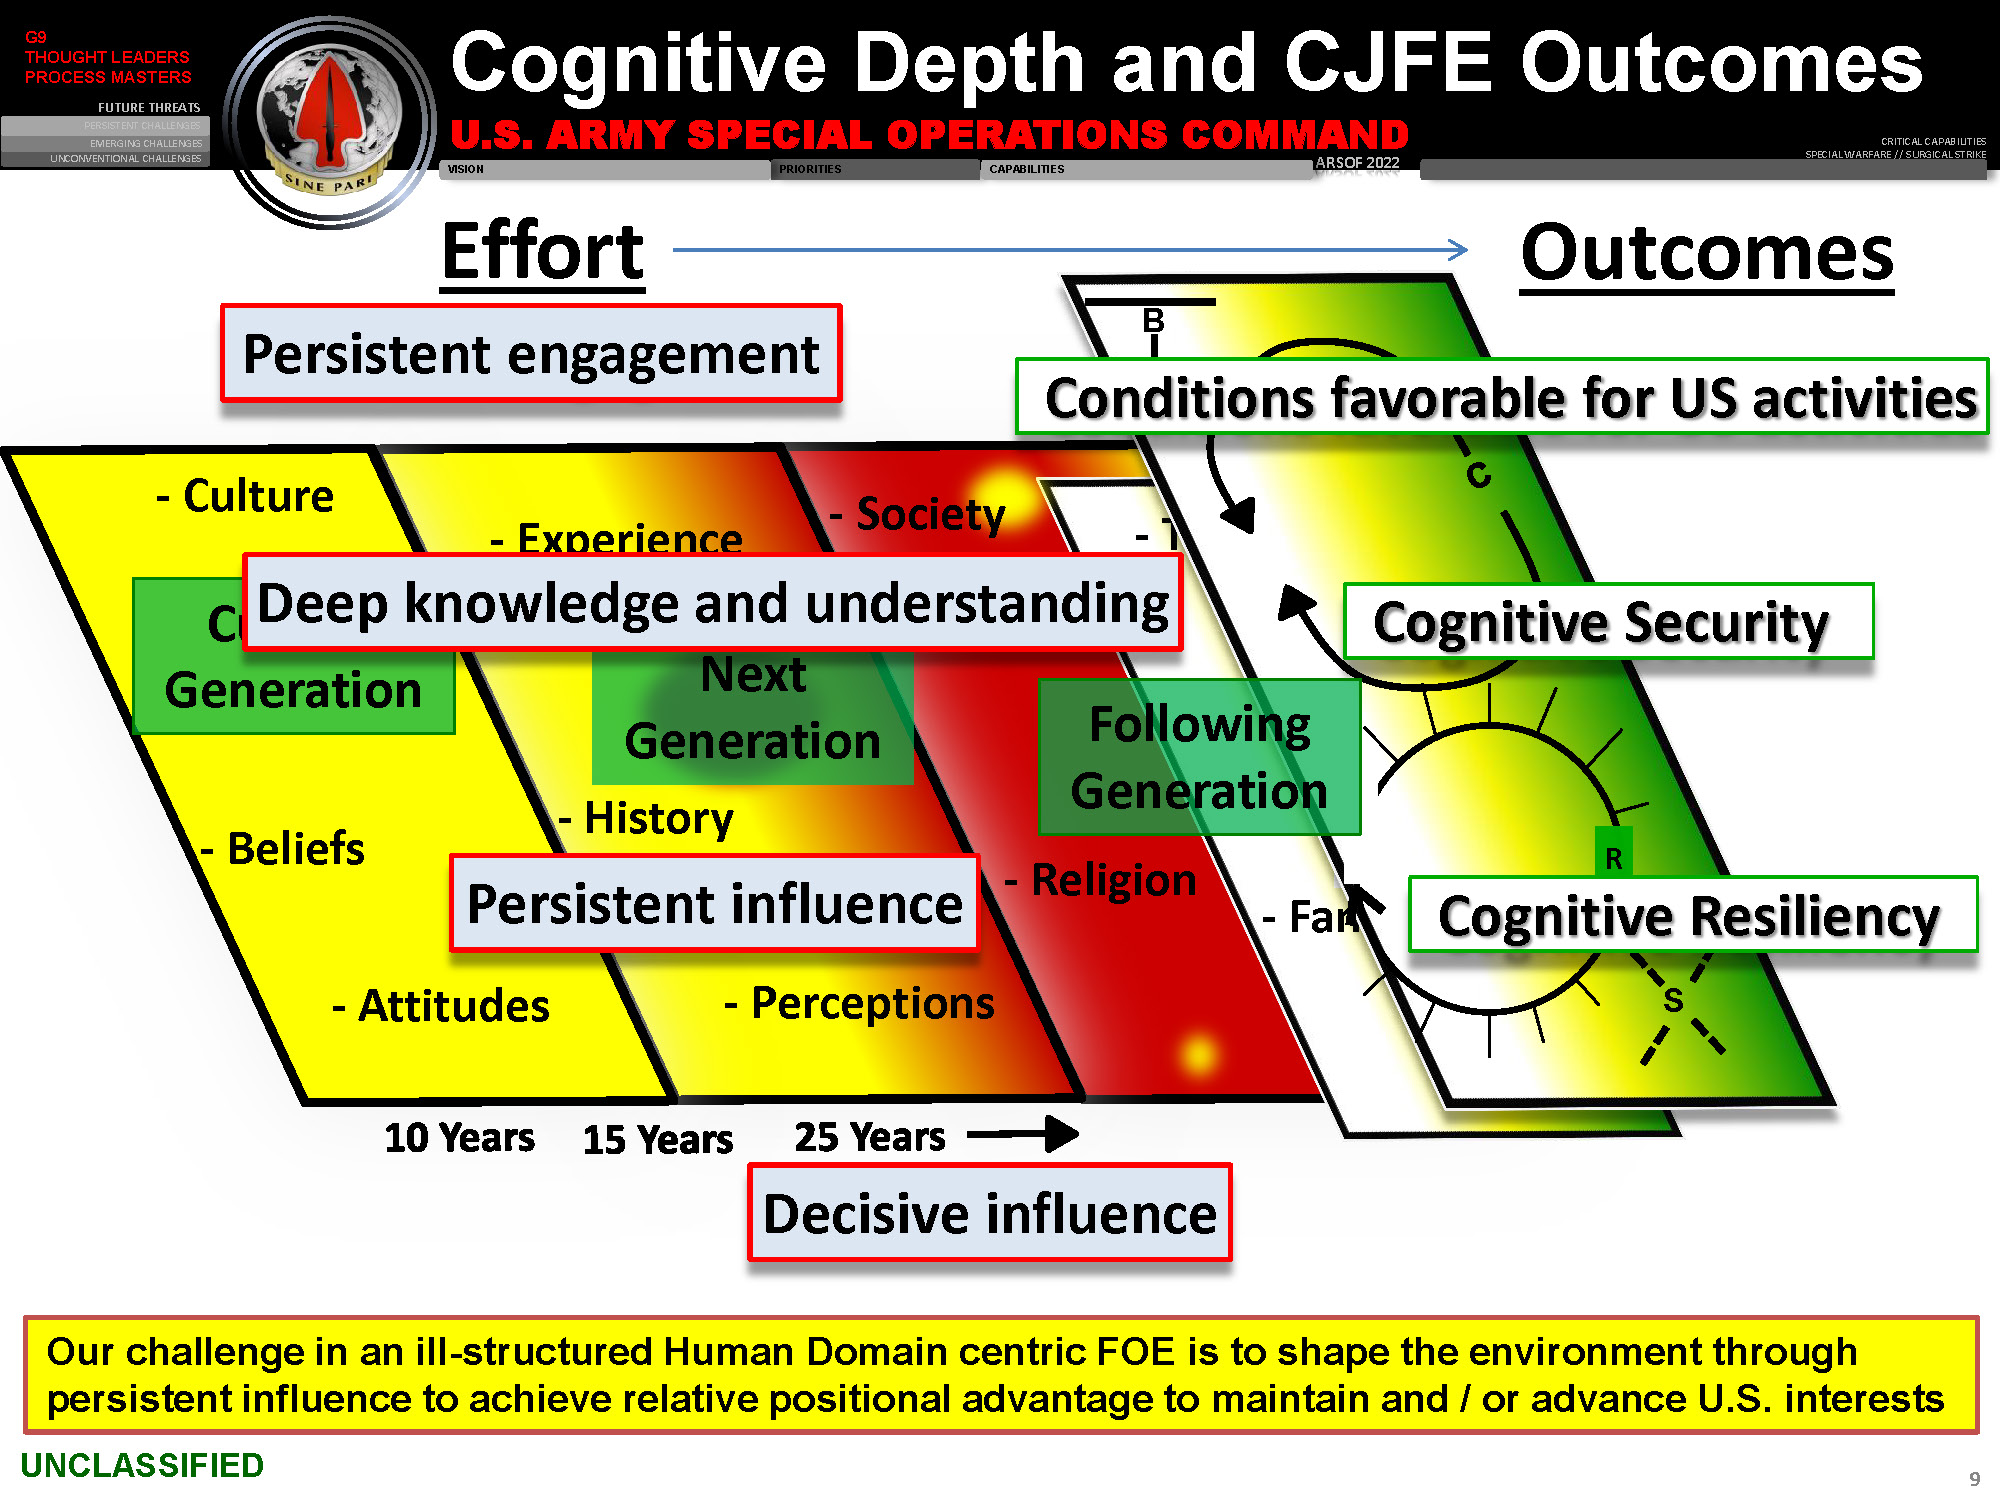 USASOC-CognitiveJointForceEntry_Page_09